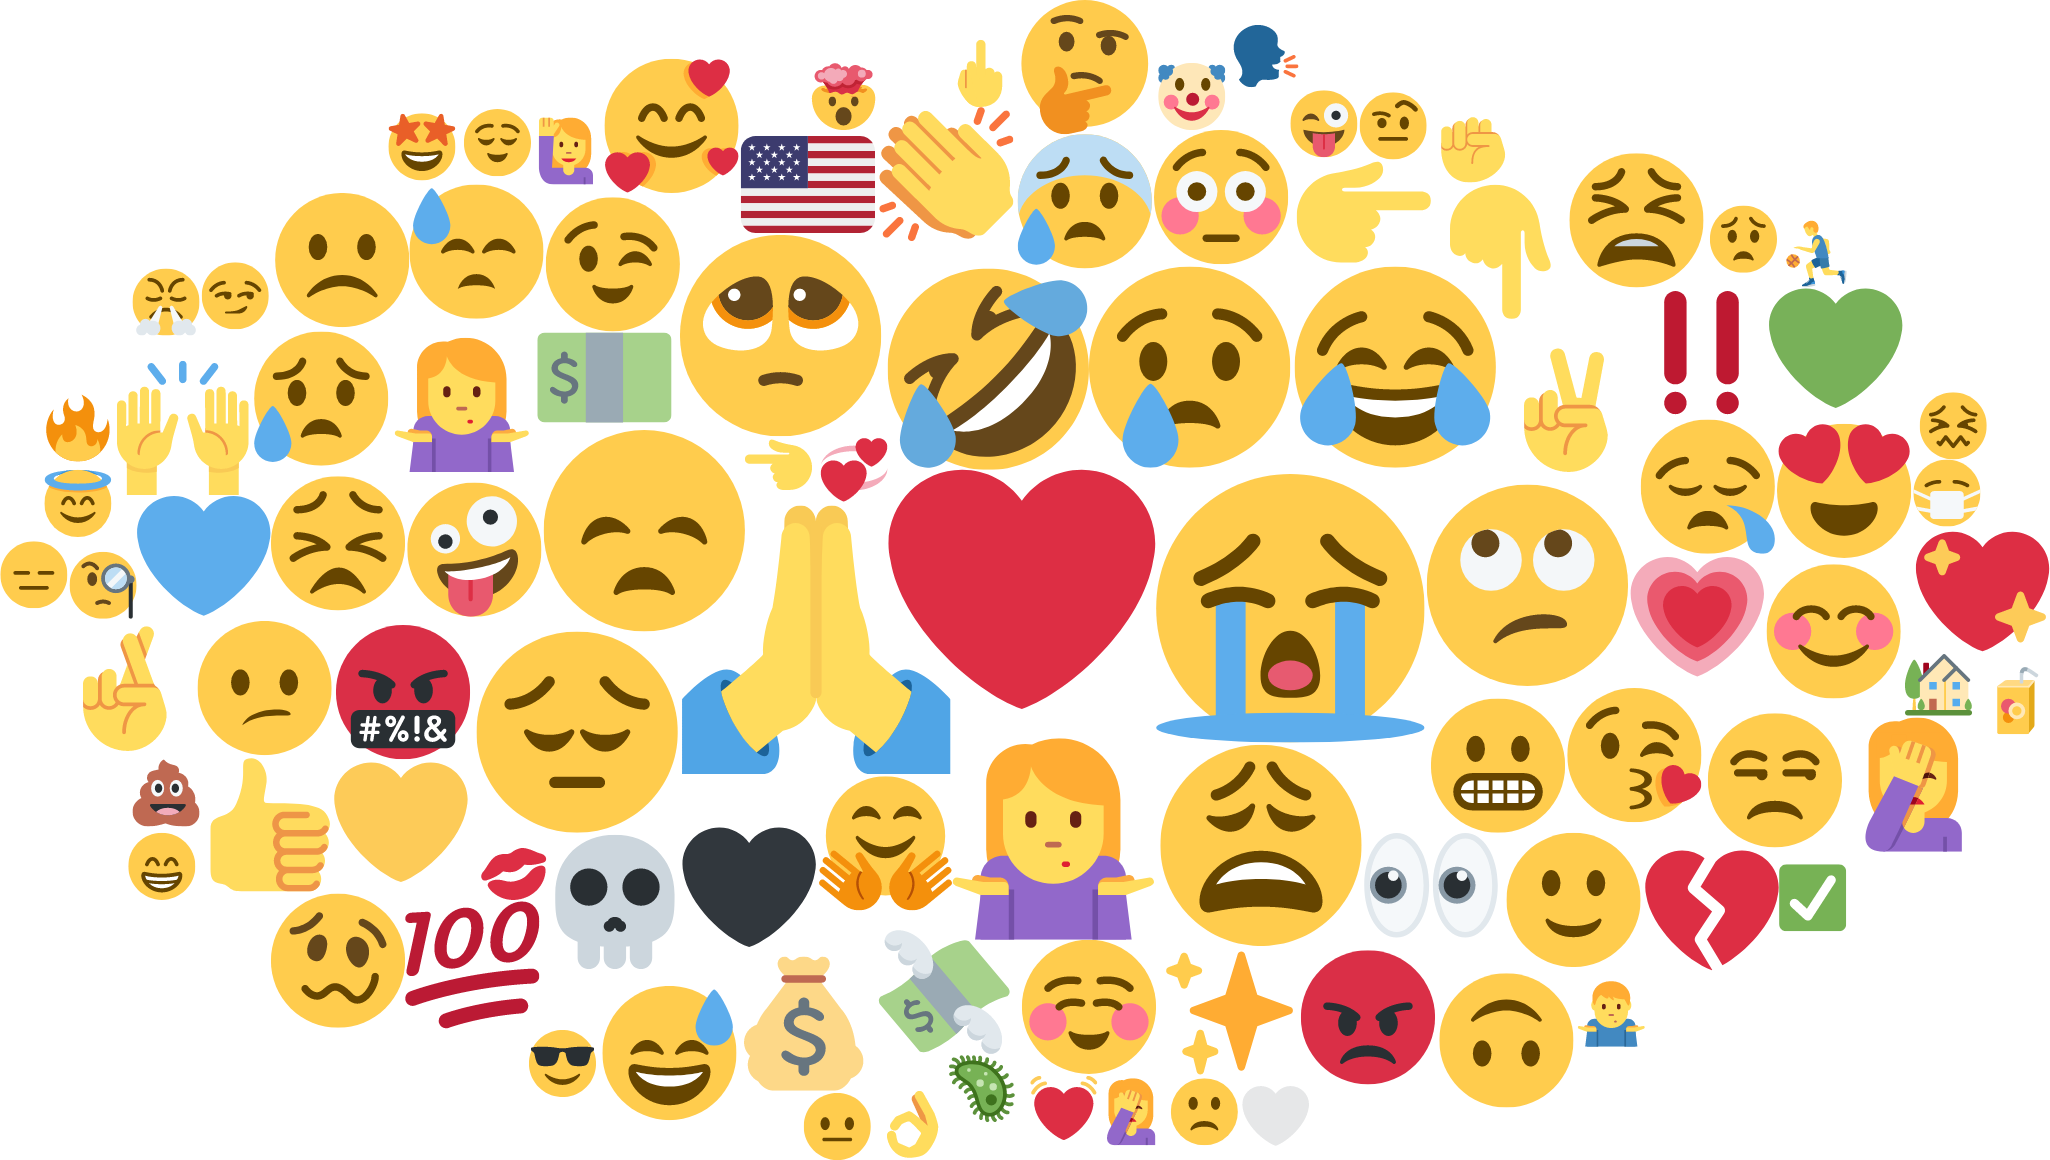 Top Emojis Overall